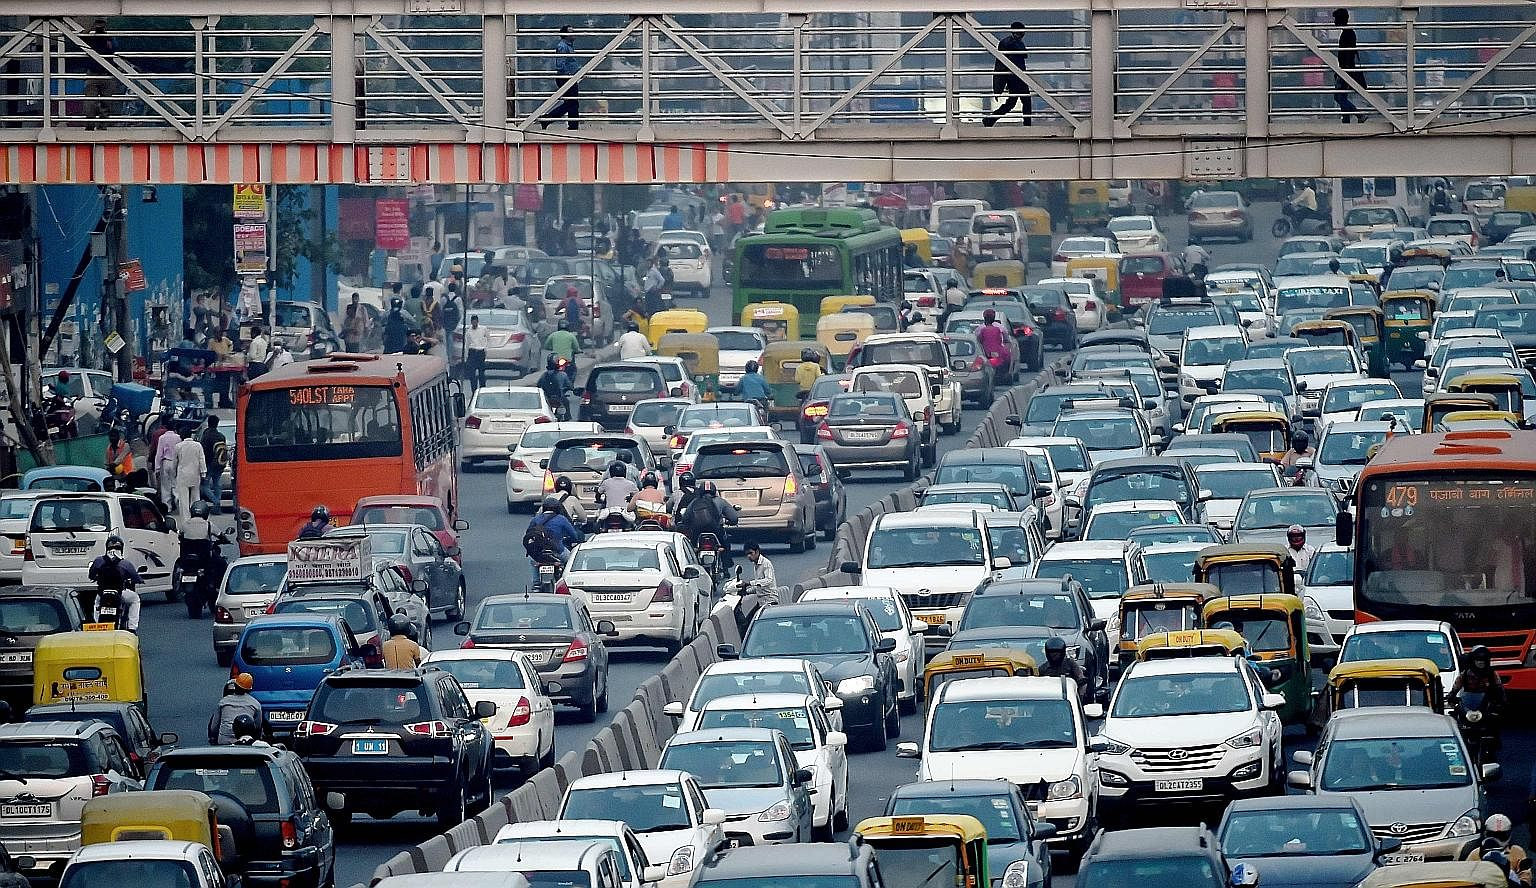 Nations like India, whose cities are beset by slums, yearn for a prosperous urban future. But getting there will require major governance and policy changes. This is because their cities, such as India's New Delhi (above), are places where traffic cr